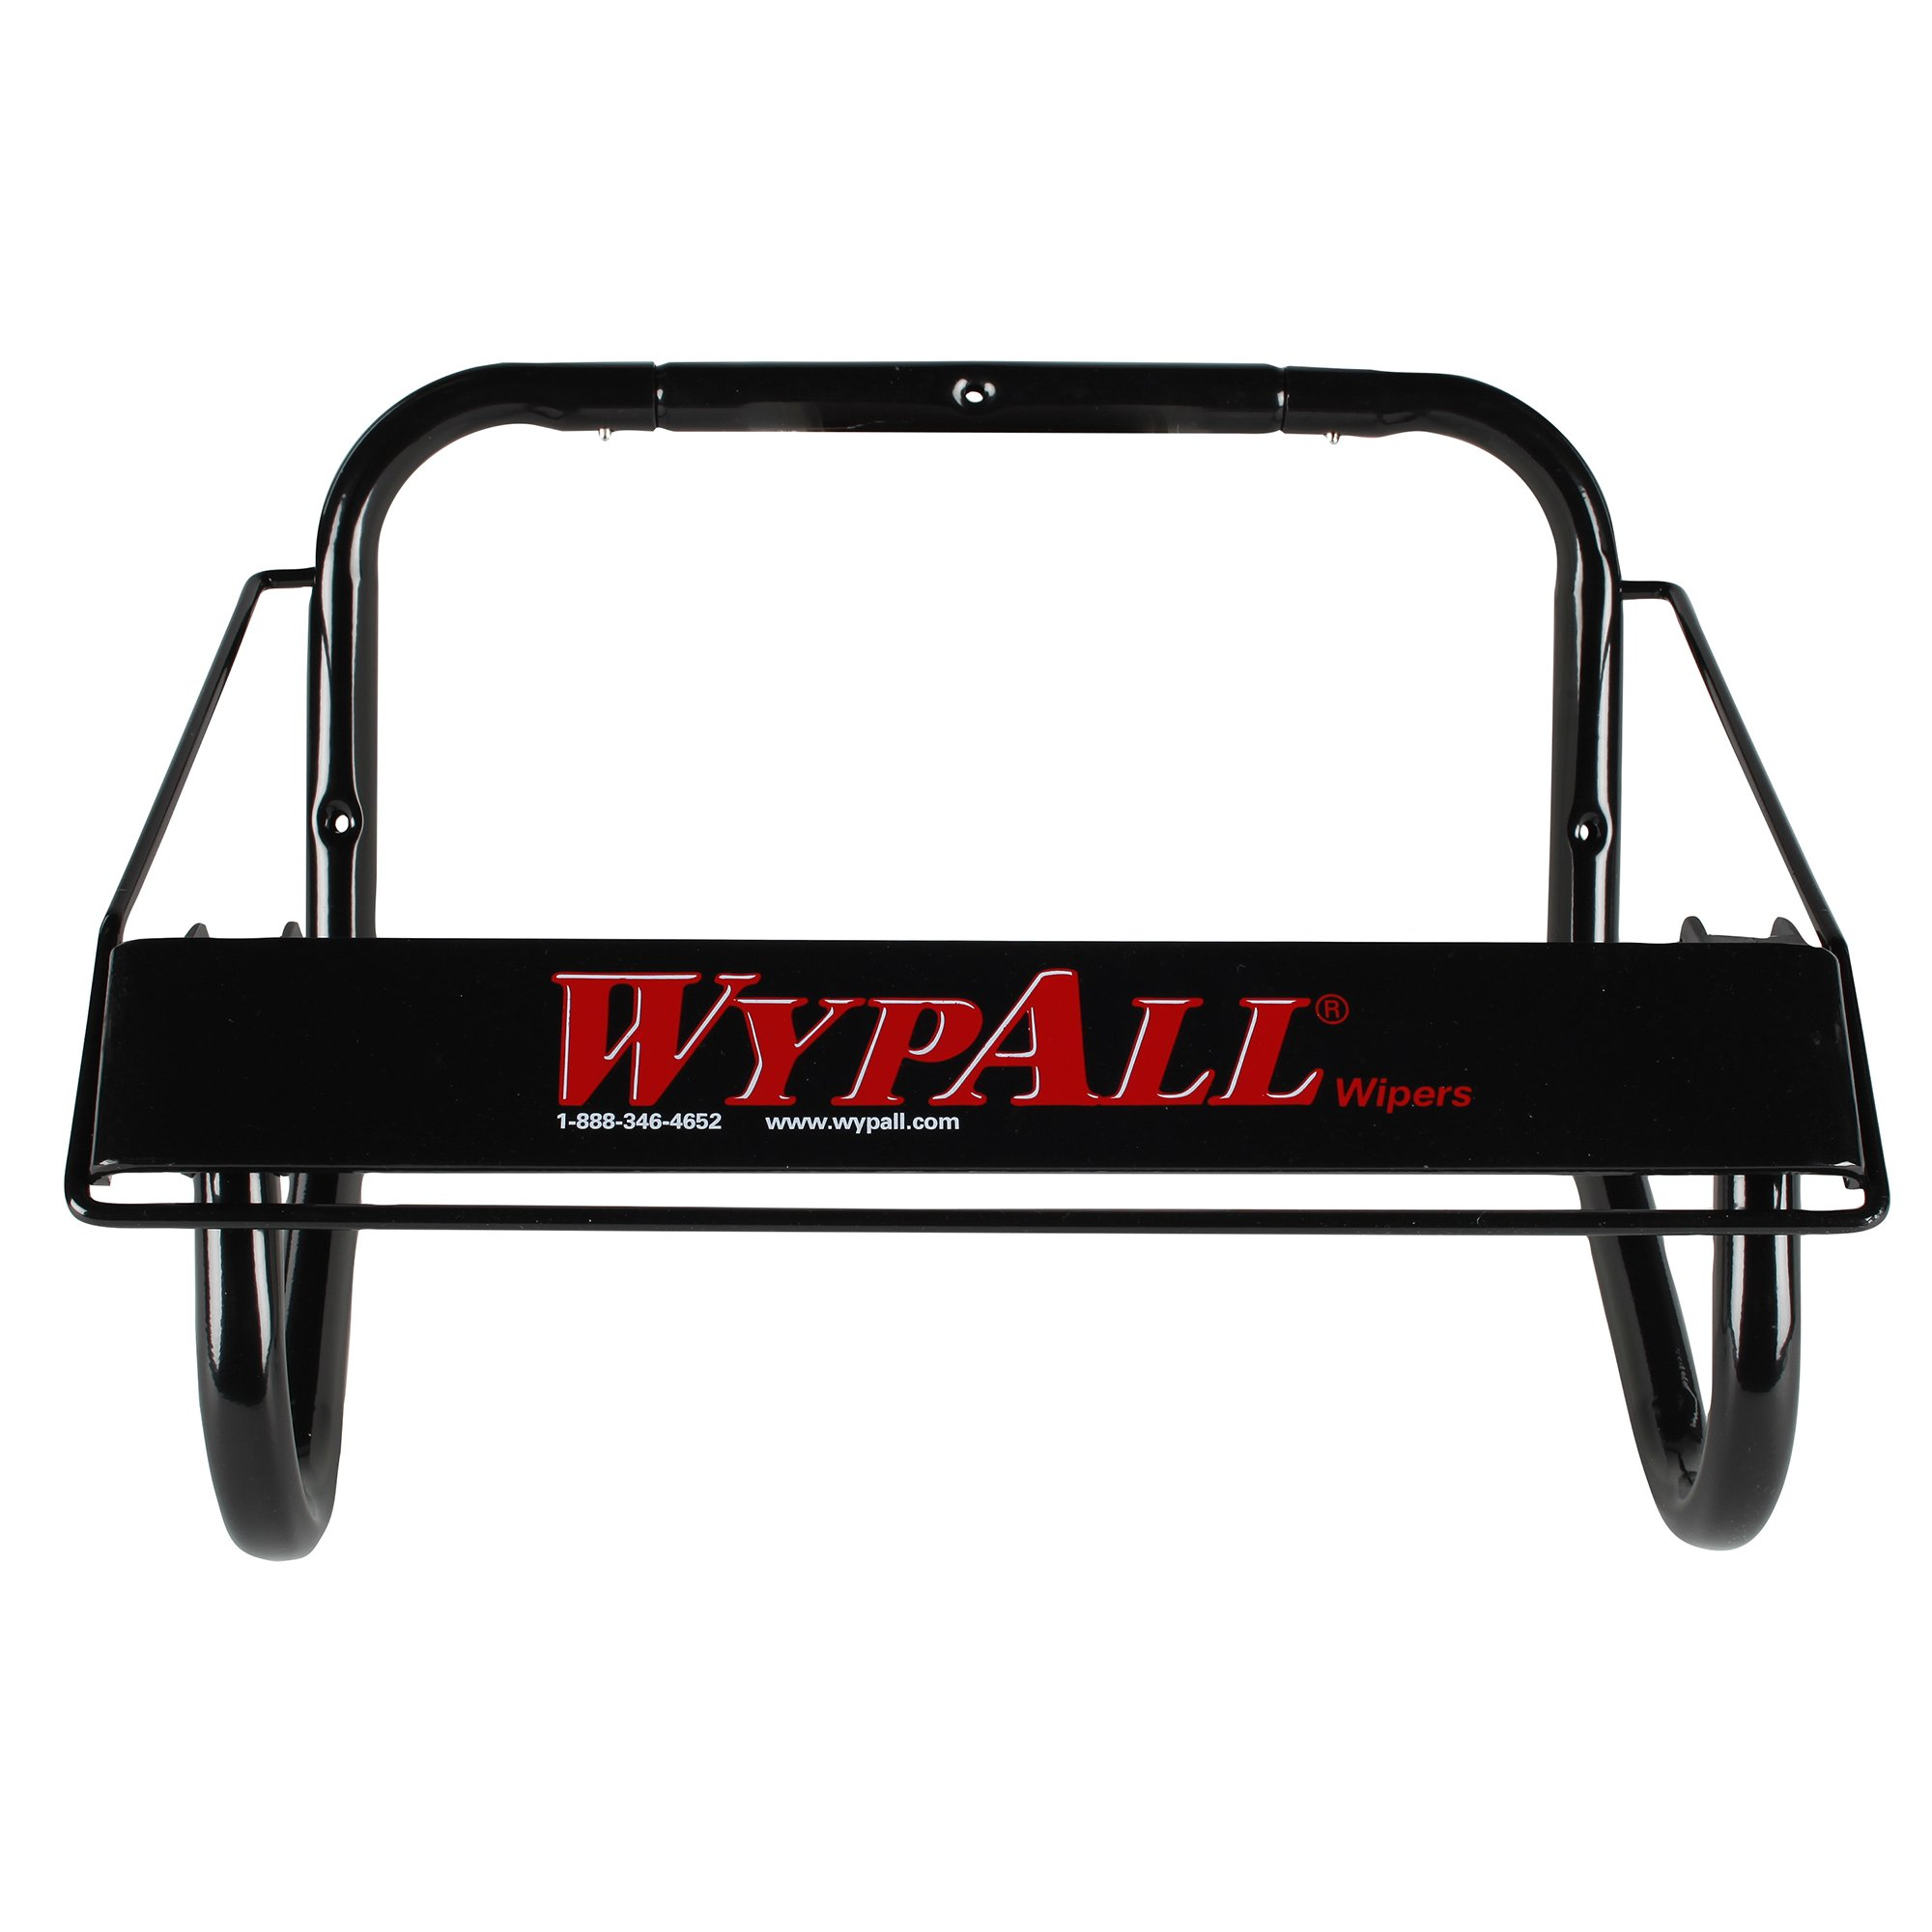 Wall Mounted Dispenser for Wypall and Kimtech Wipes (80579), Jumbo Roll, Black